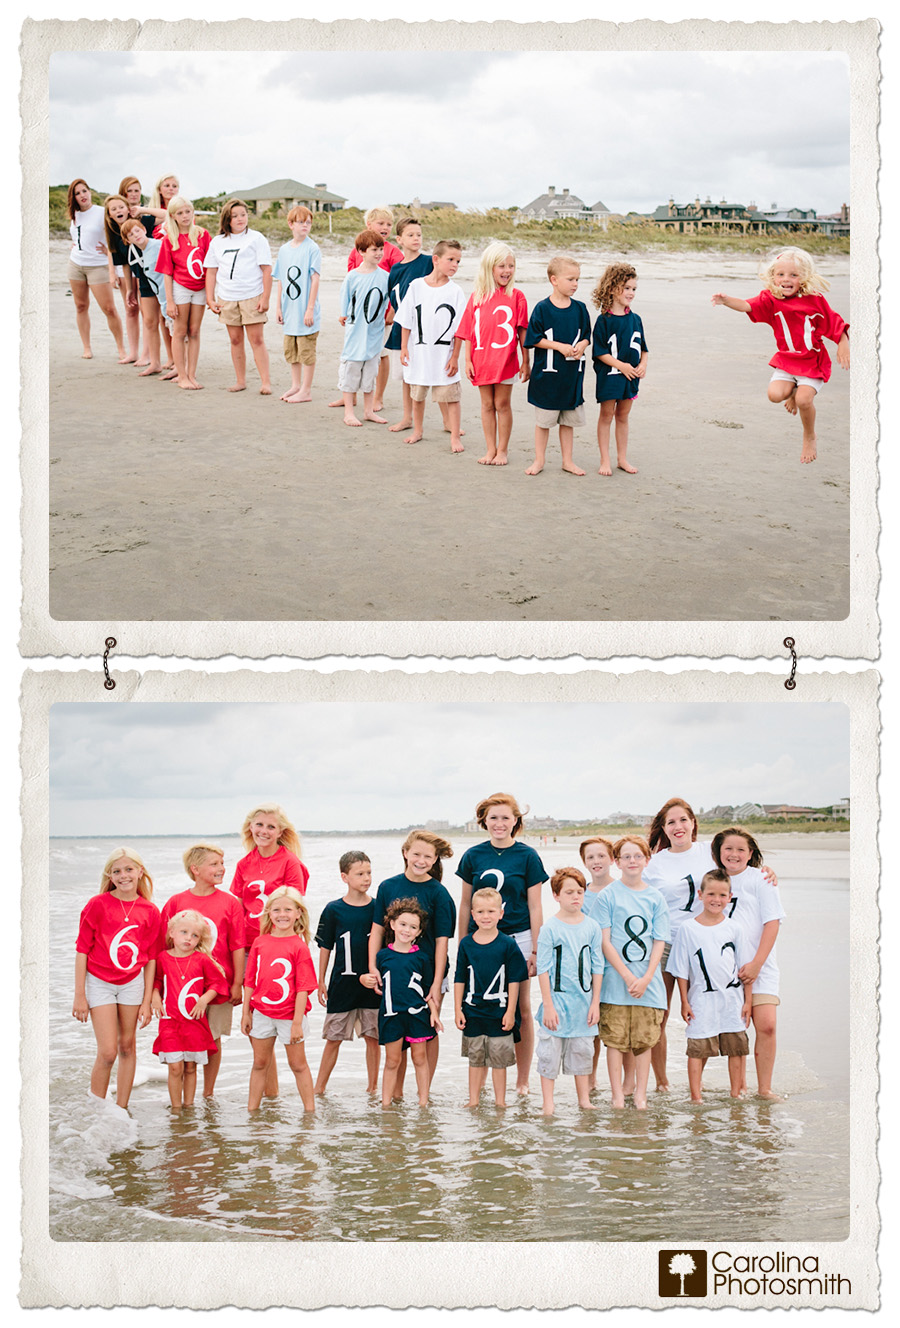 Cousin photo – number of order – color by family. So great!